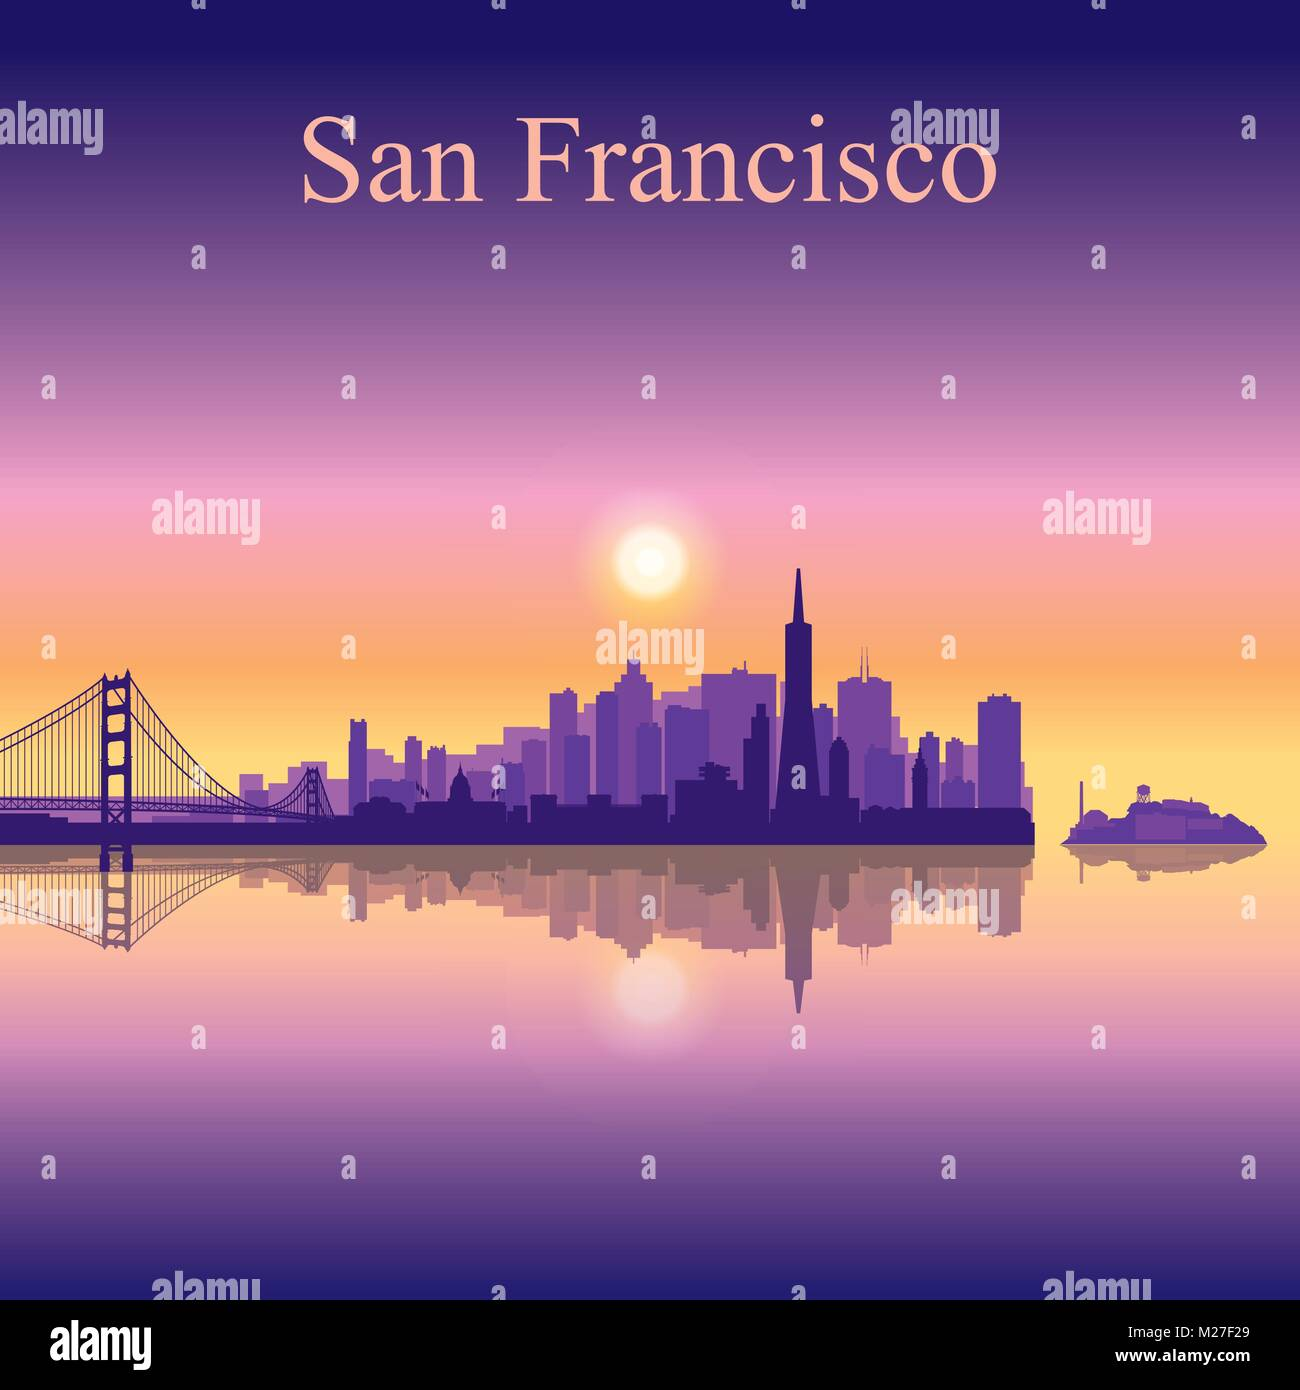 San Francisco city skyline silhouette background, vector illustration Photo Stock